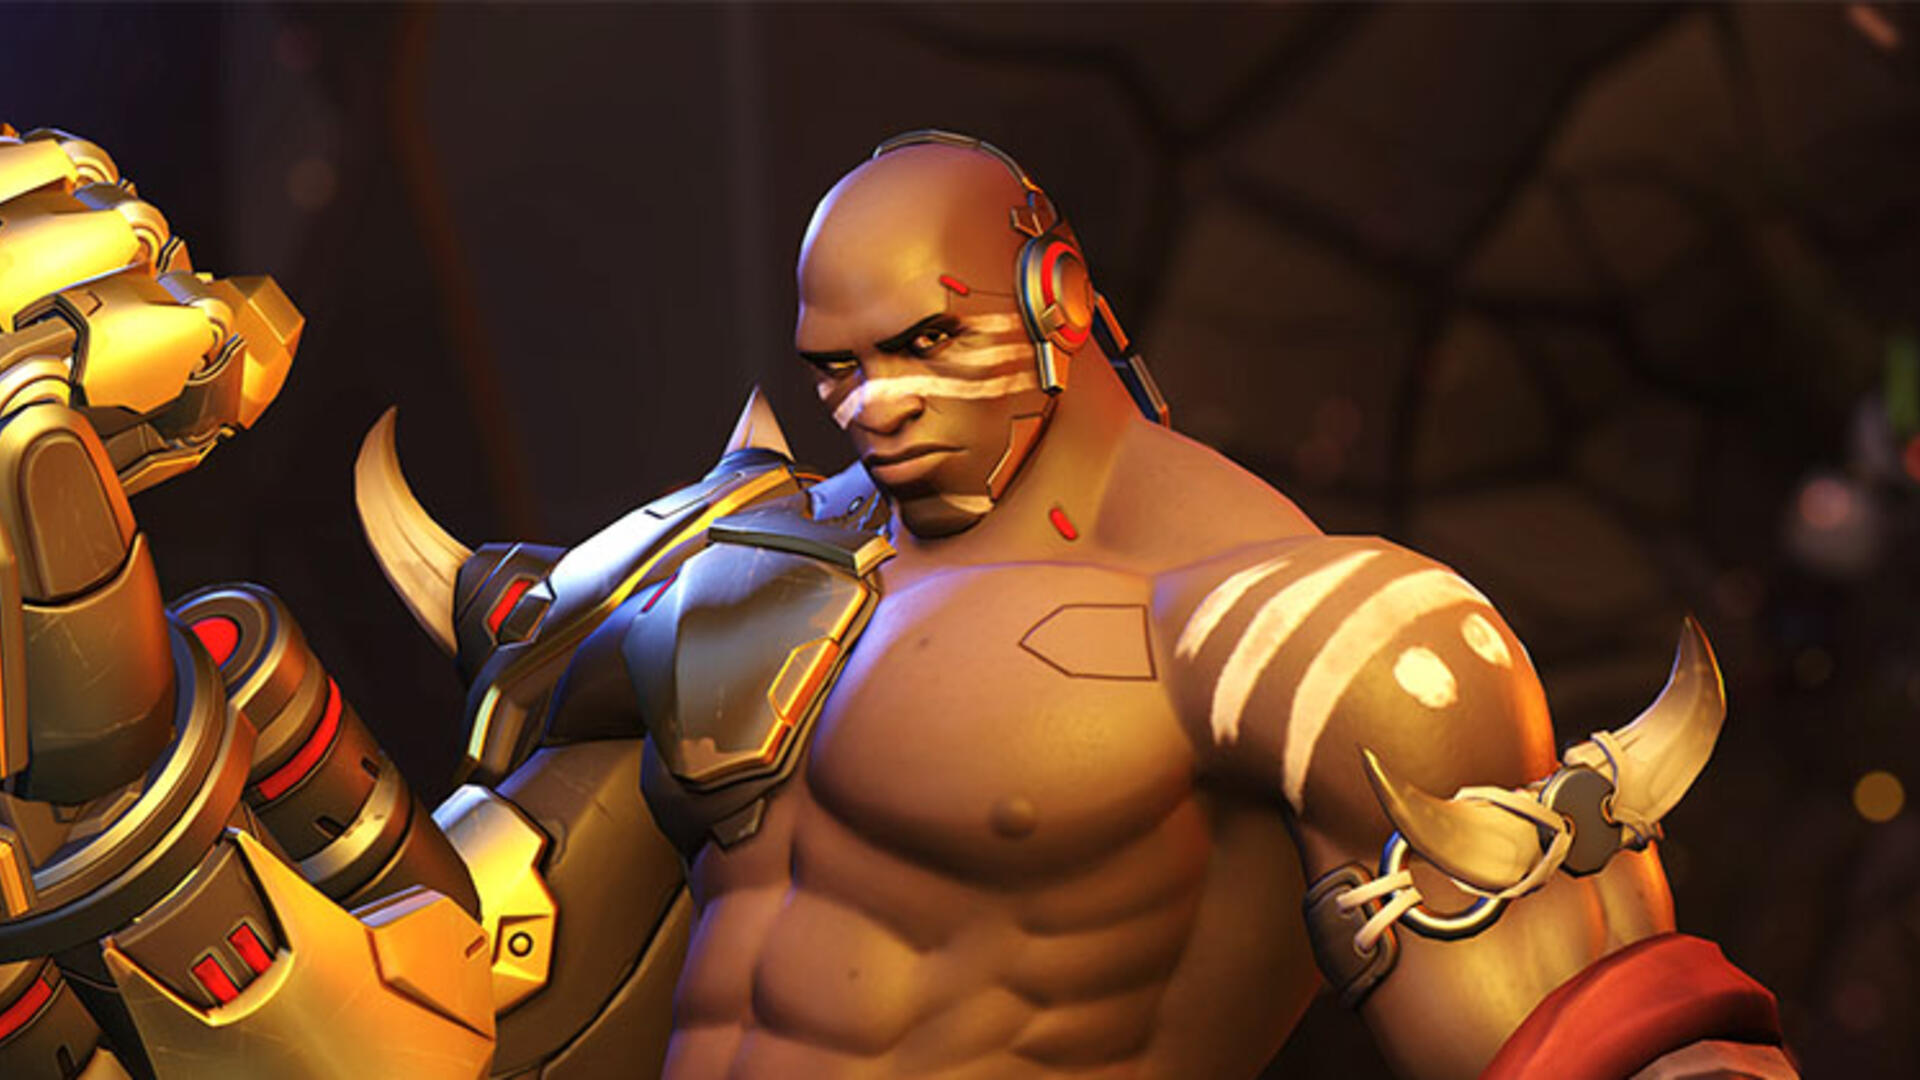 Doomfist is Now Live on the Overwatch PTR, Terry Crews Will Not be Voicing the Character